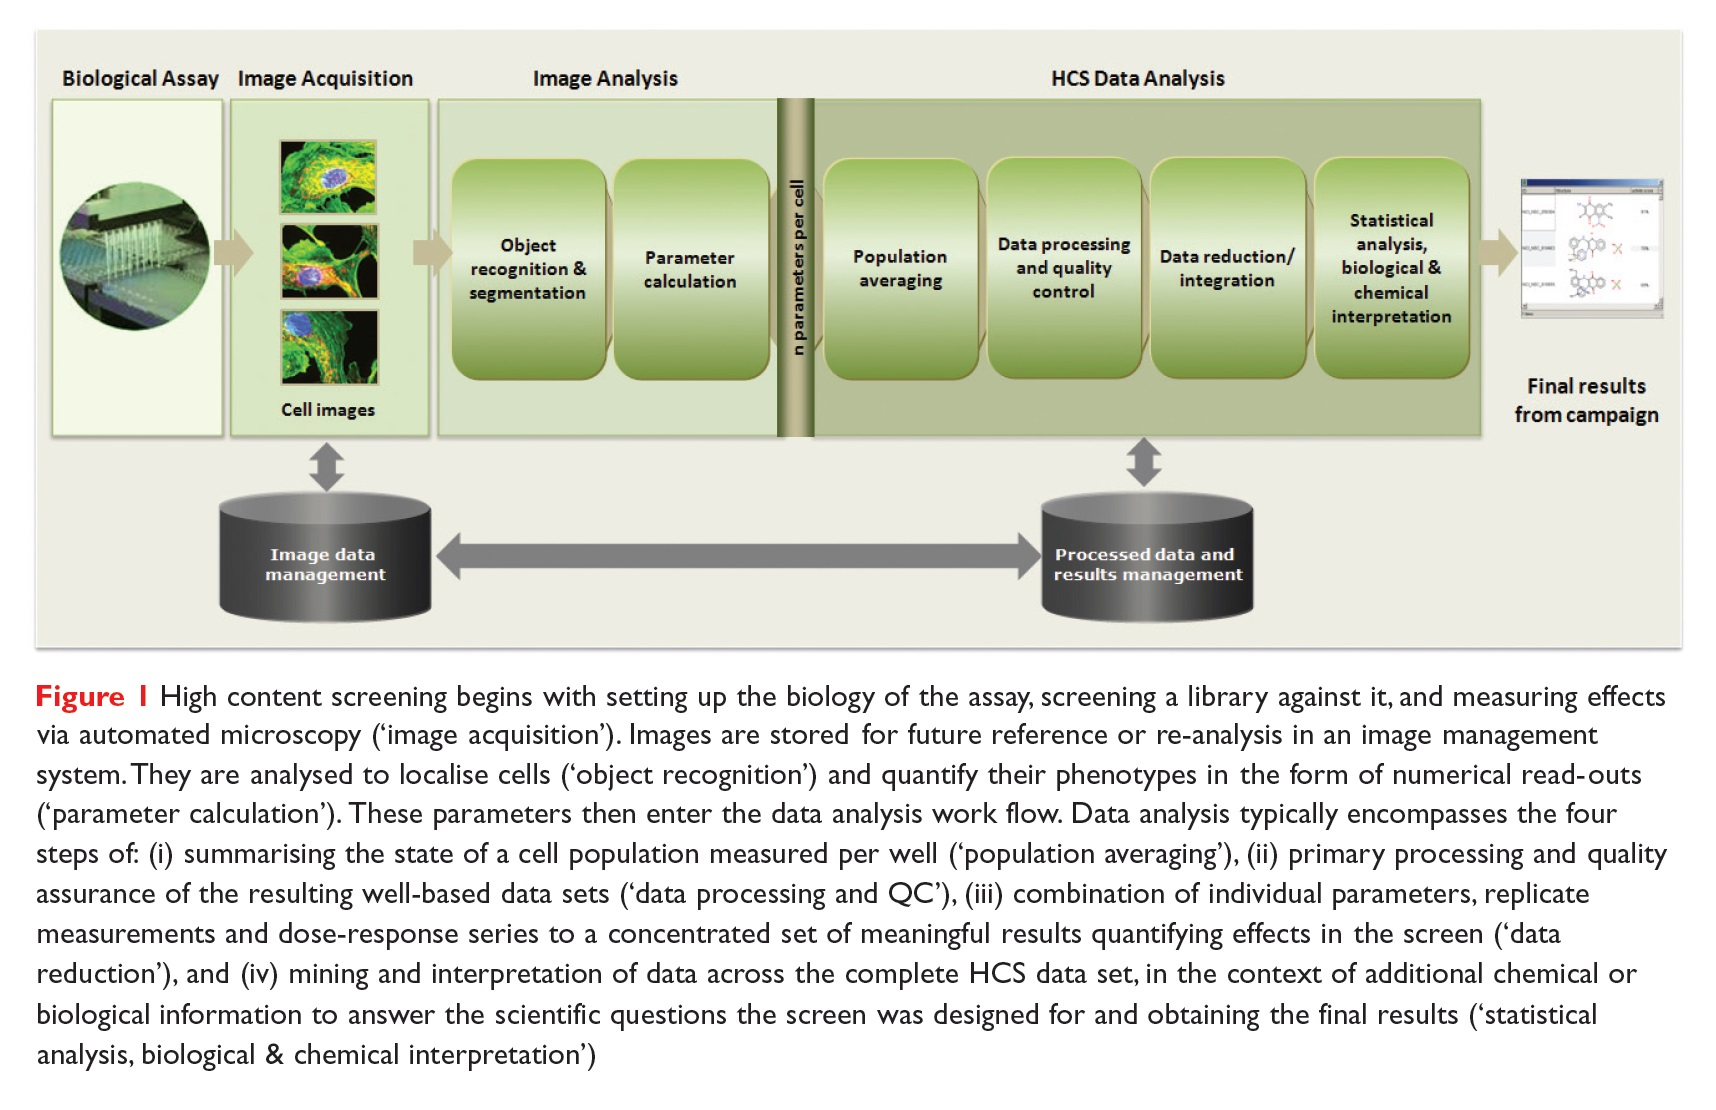 Figure 1 High content screening begins with setting up the biology of the assay, screening a library against it, and measuing effects via automated microscopy